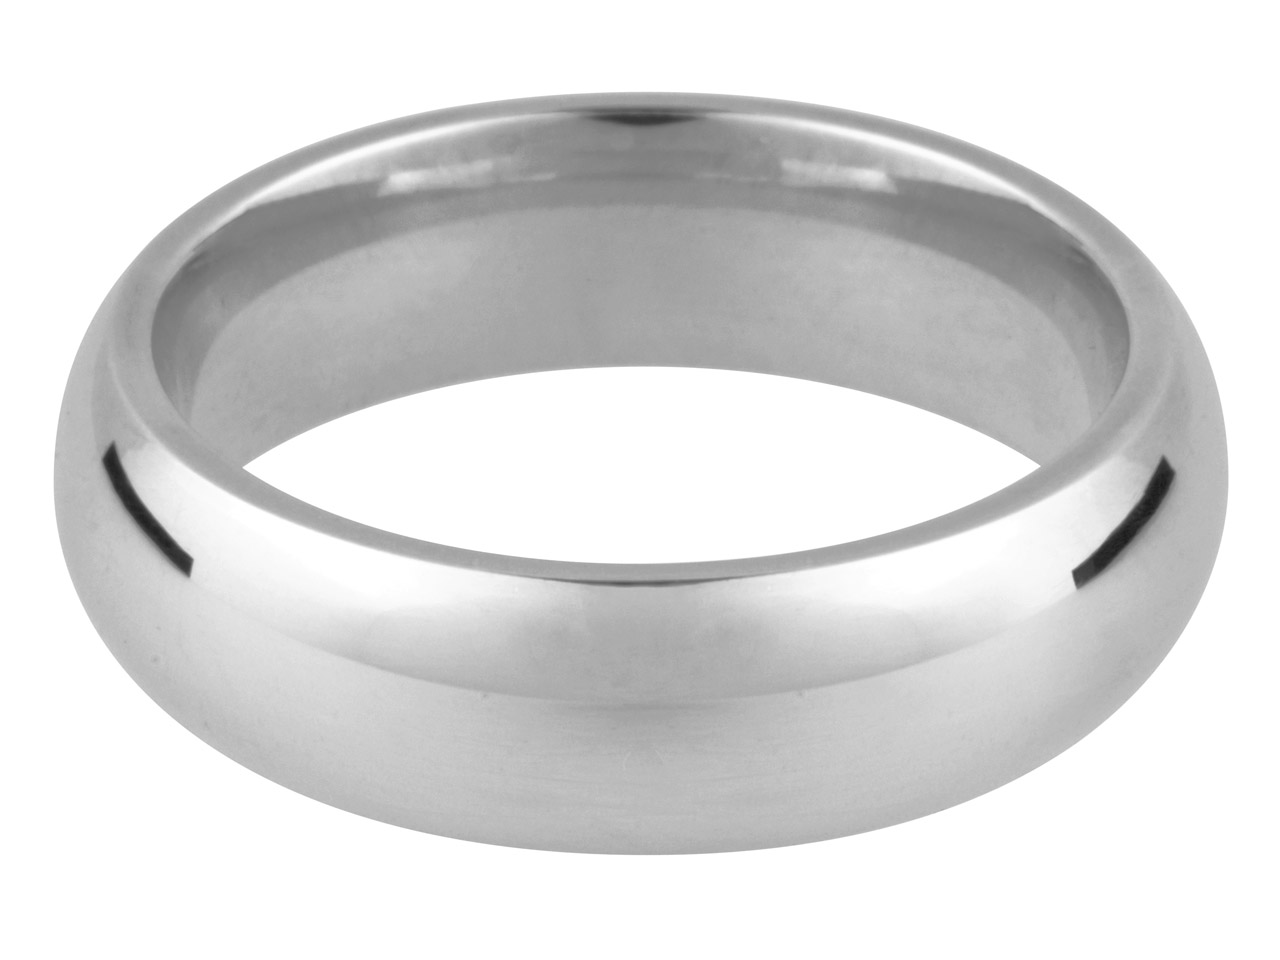 Platinum Court Wedding Ring 5.0mm W 11.1gms Medium Weight Hallmarked    Wall Thickness 1.86mm